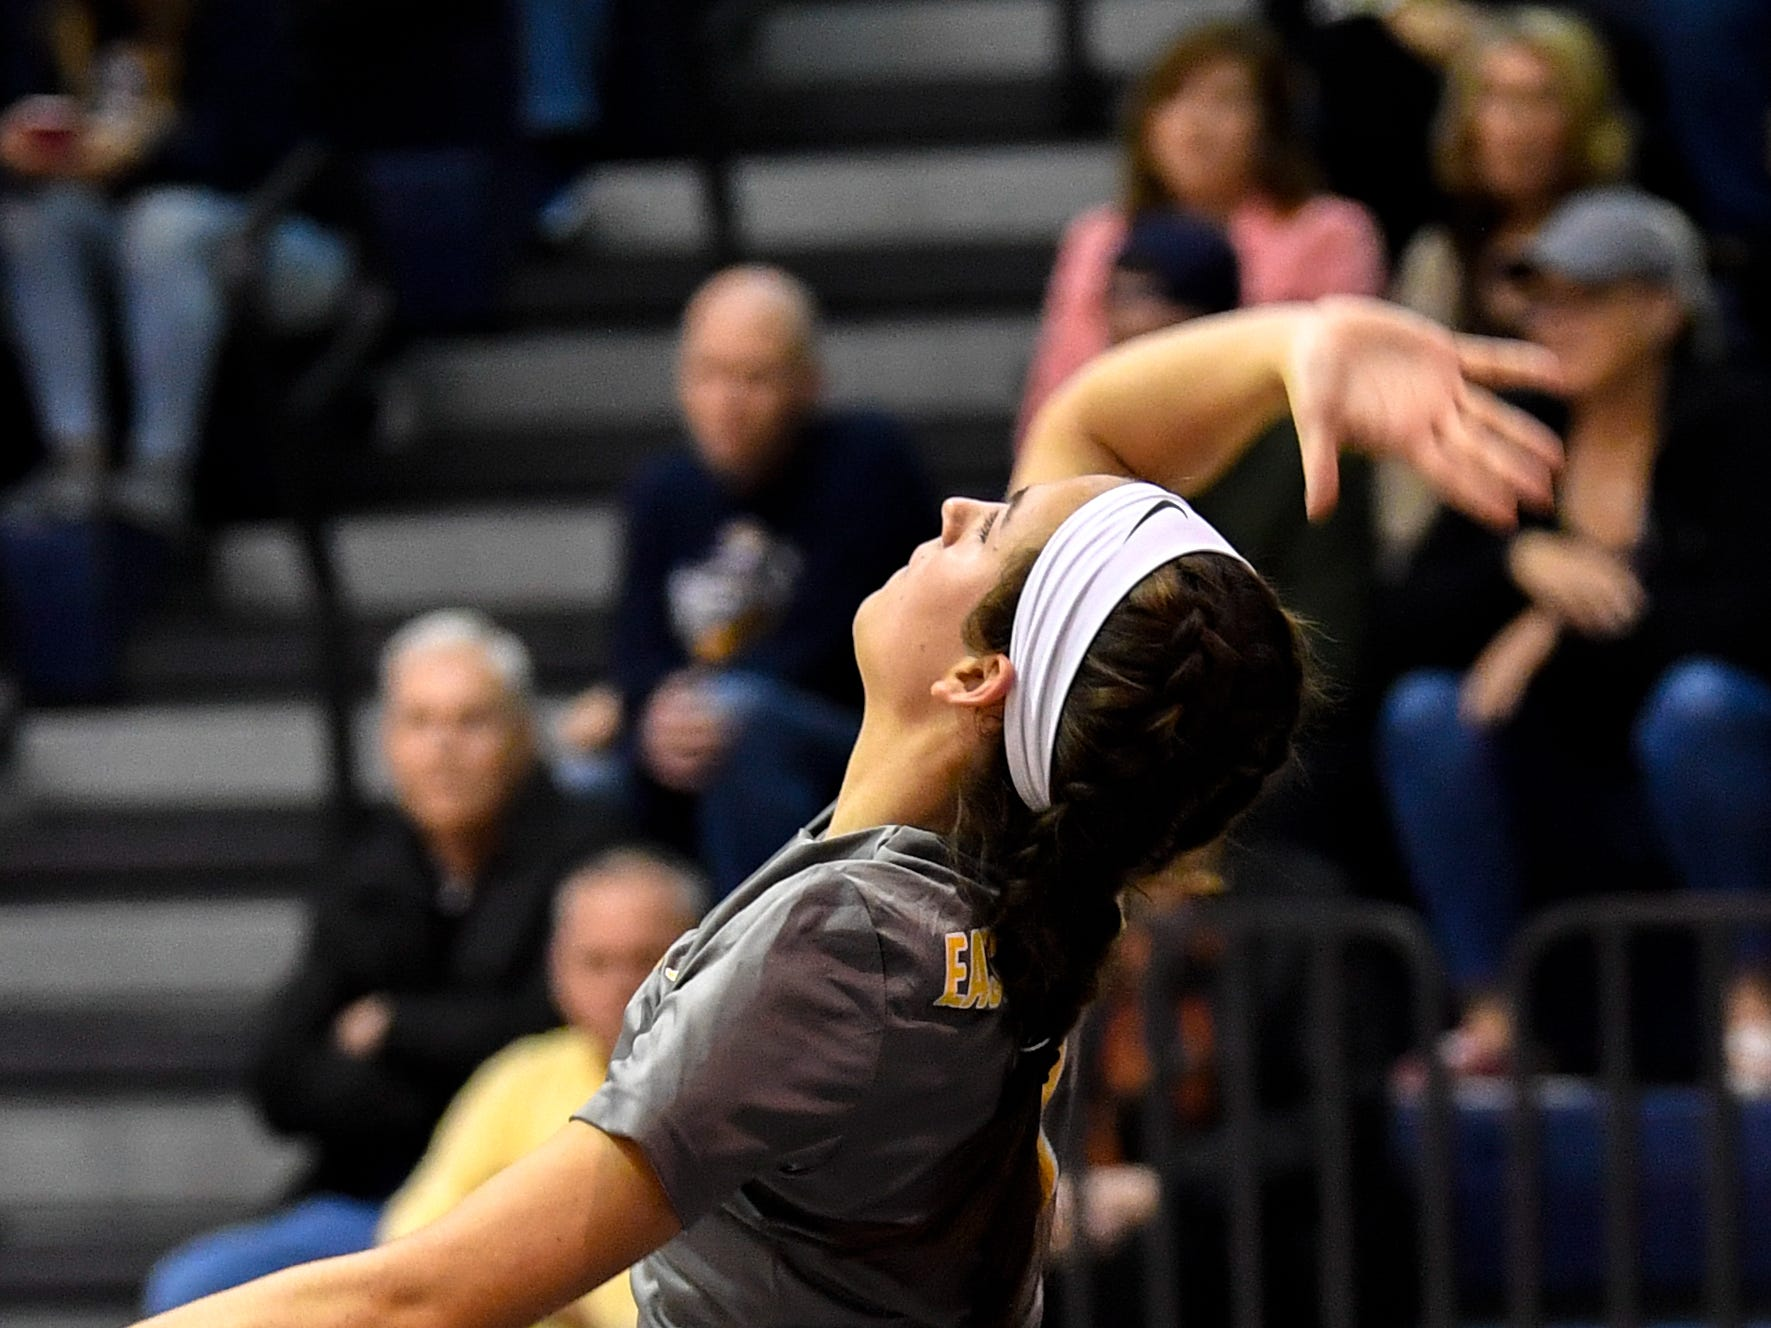 Morgan Dobbeck (2) prepares to send the ball over the net during the YAIAA league volleyball tournament semifinals between Eastern York and Delone Catholic, Tuesday, October 23, 2018. The Squirettes defeated the Golden Knights 3-2.